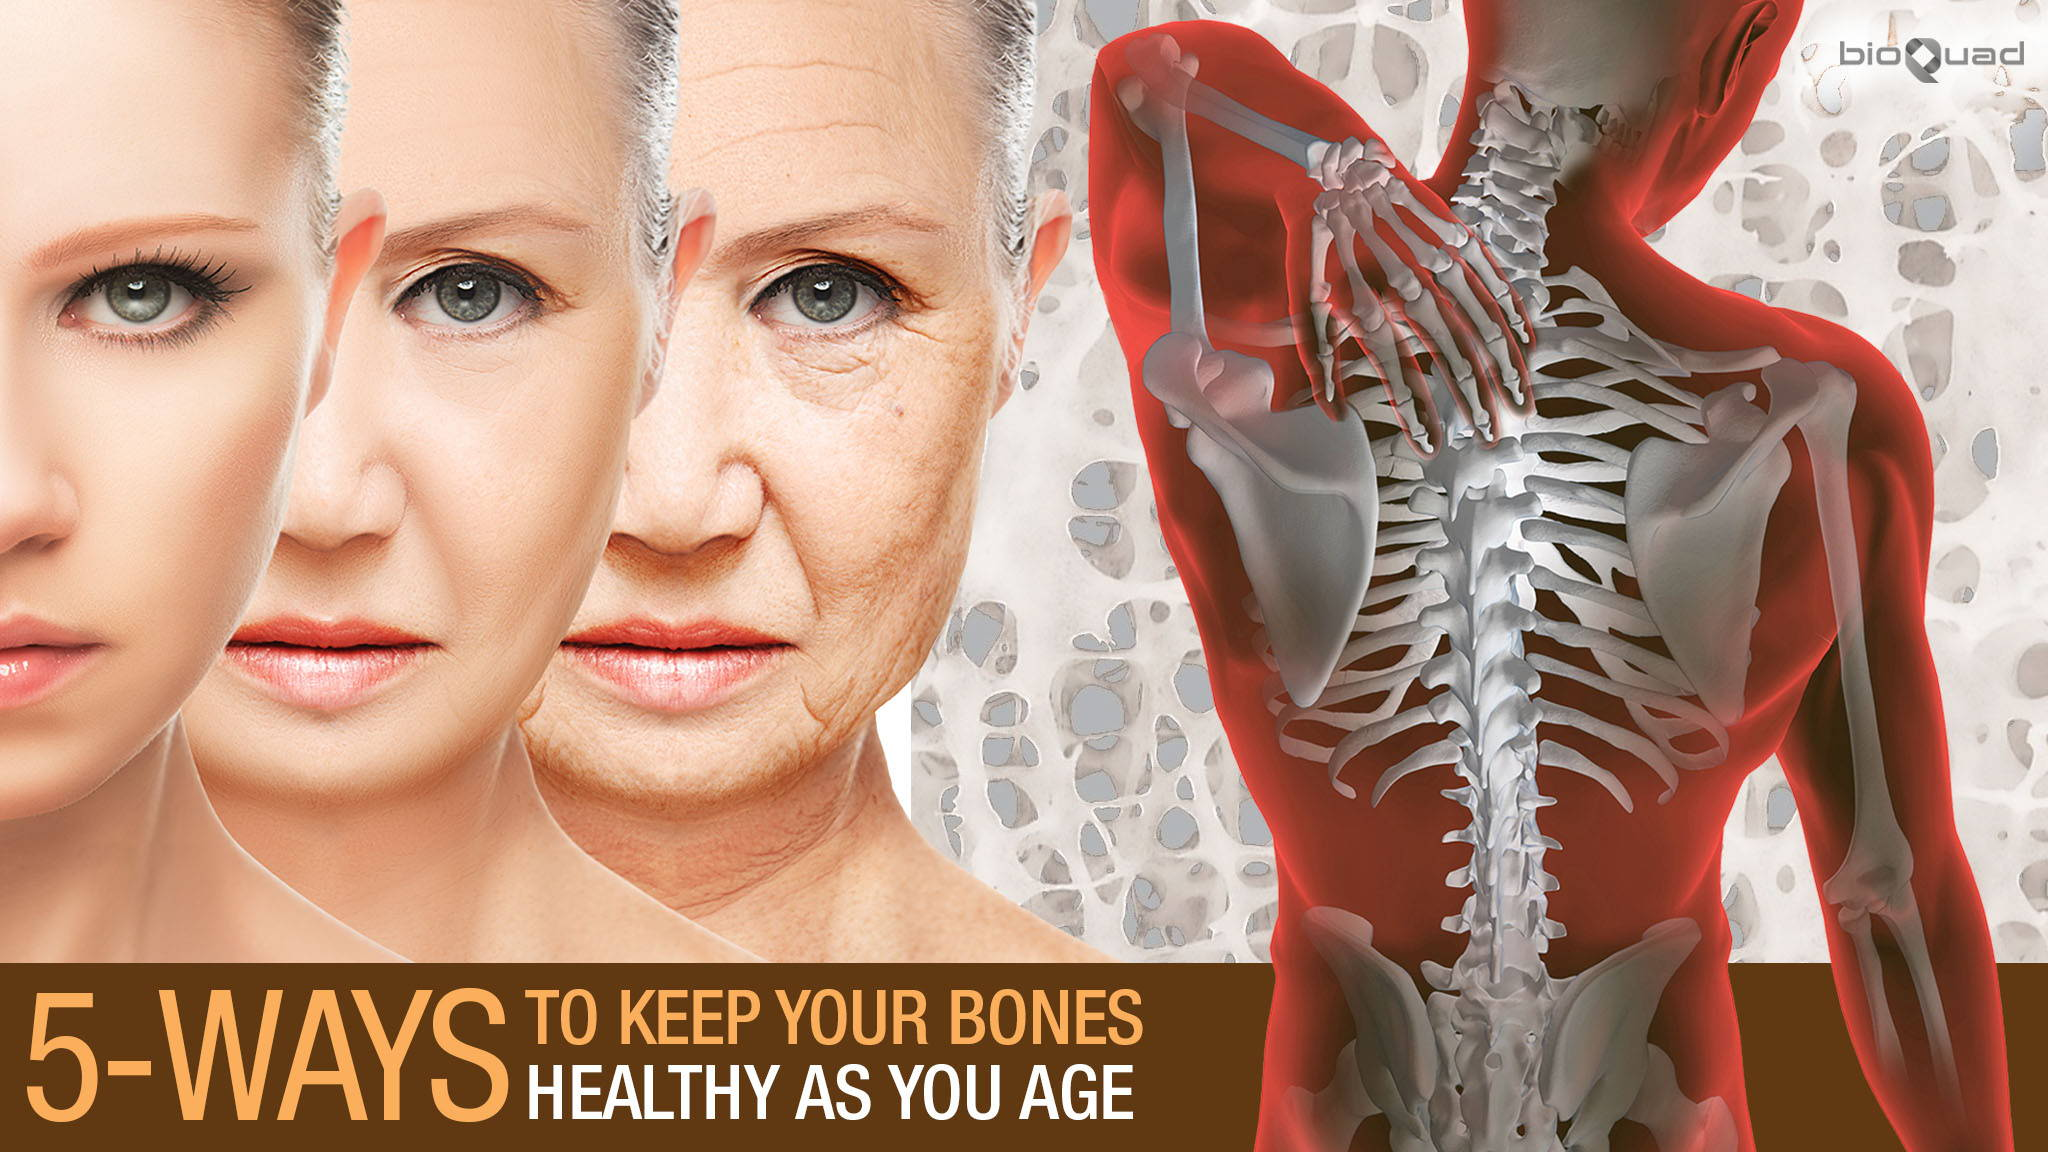 5 Ways to Keep Your Bones Healthy As You Age